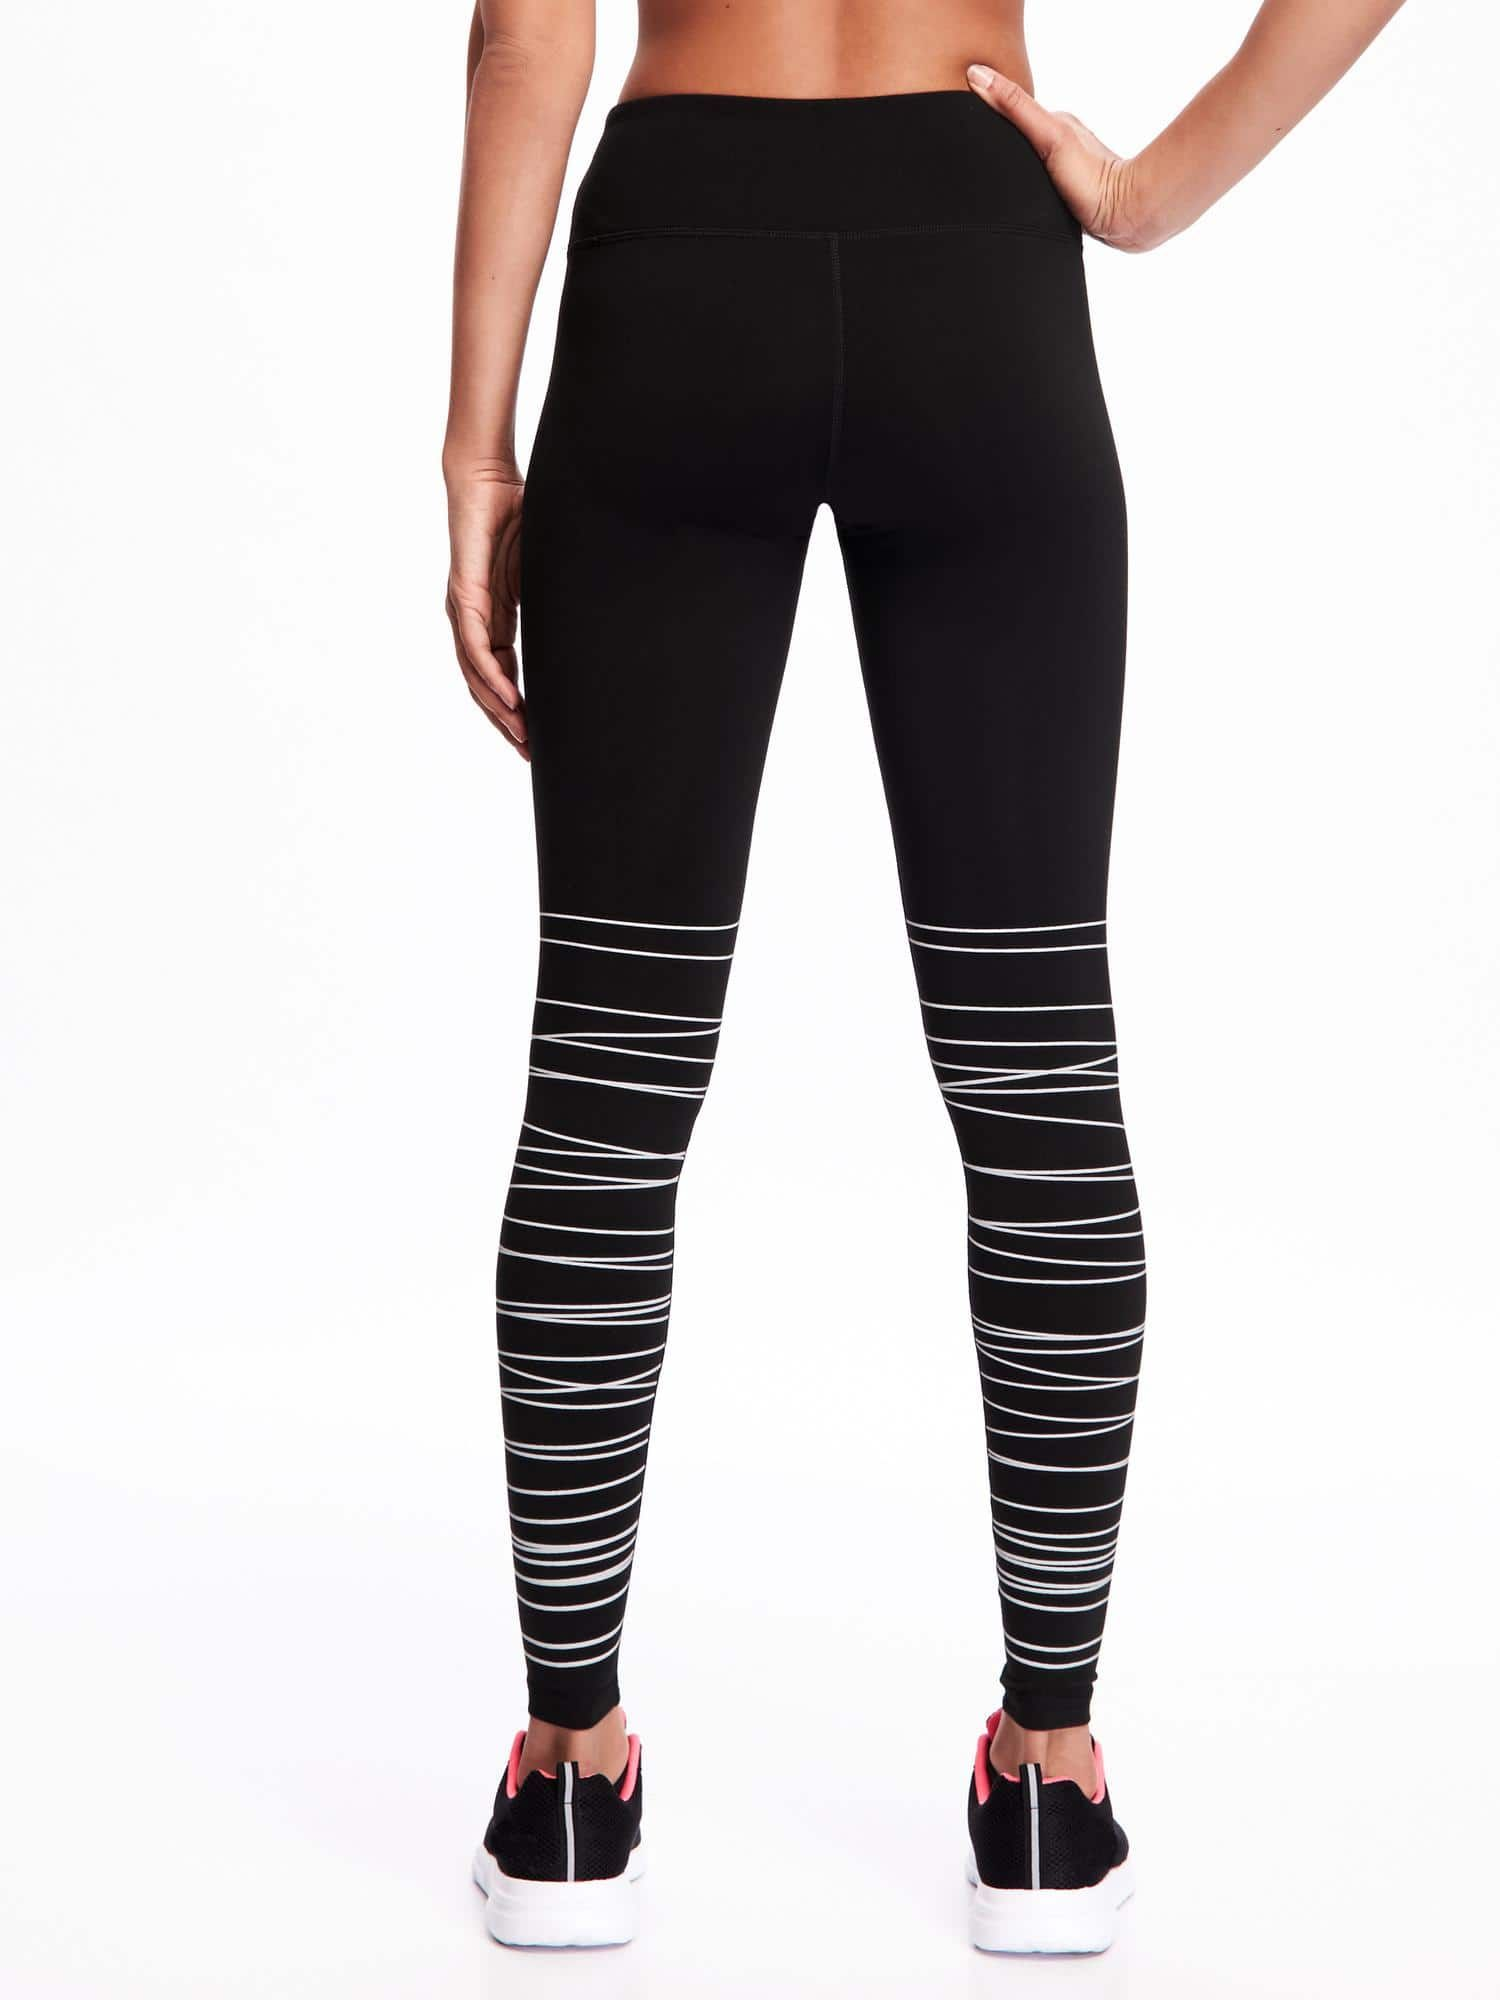 f5acdb9e58131 Go-Dry Mid-Rise Textured-Print Compression Tights | Style & Fashion ...